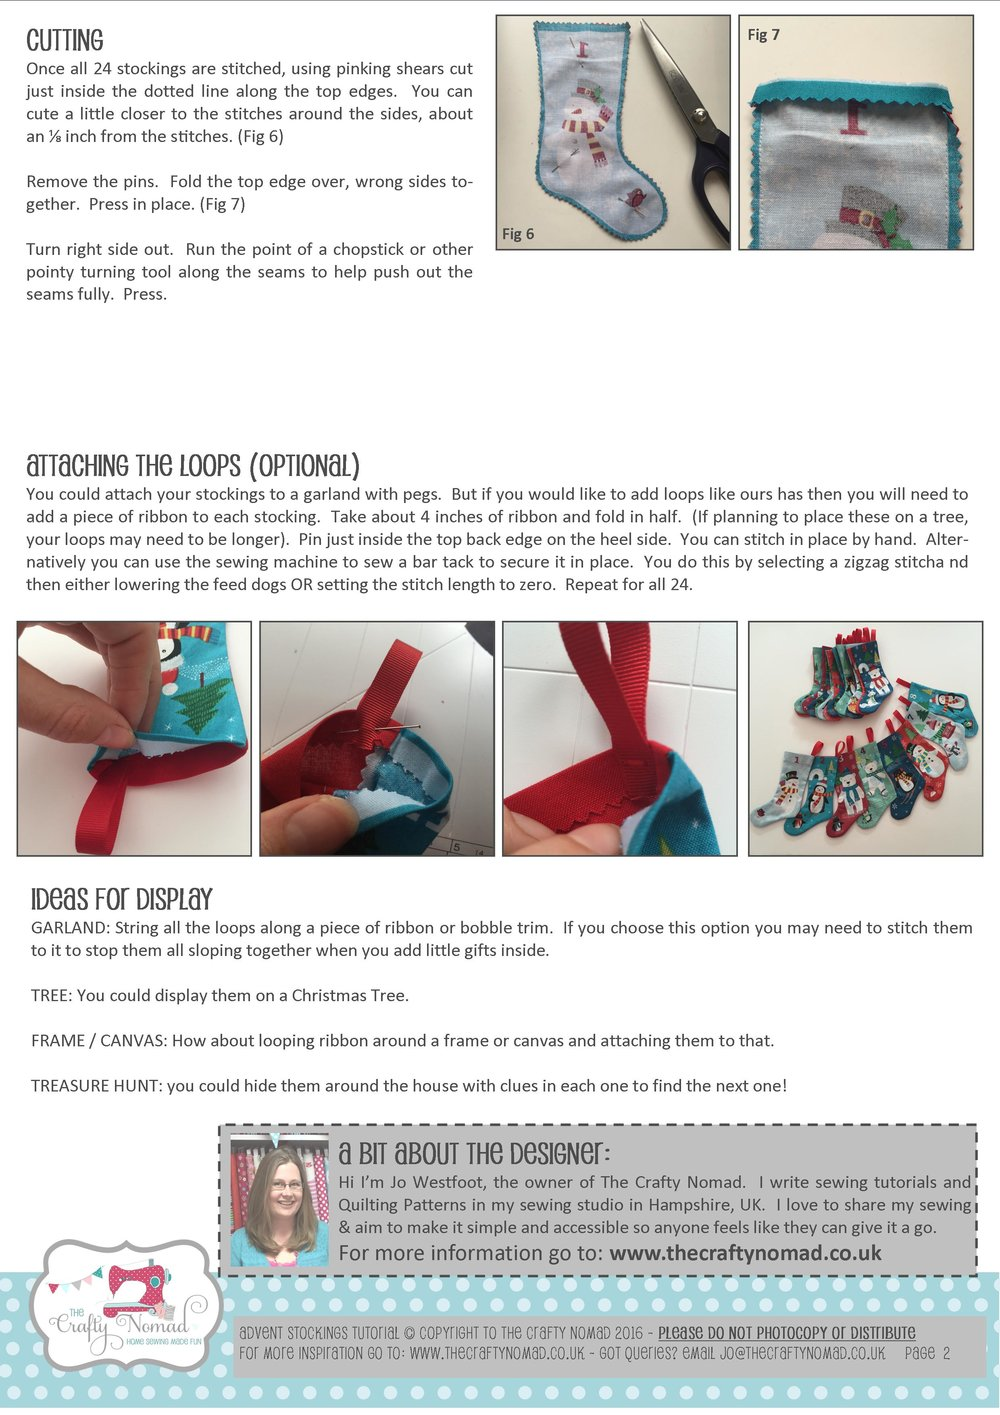 17 Advent Stockings Tutorial Page 2 The Crafty Nomad.jpg